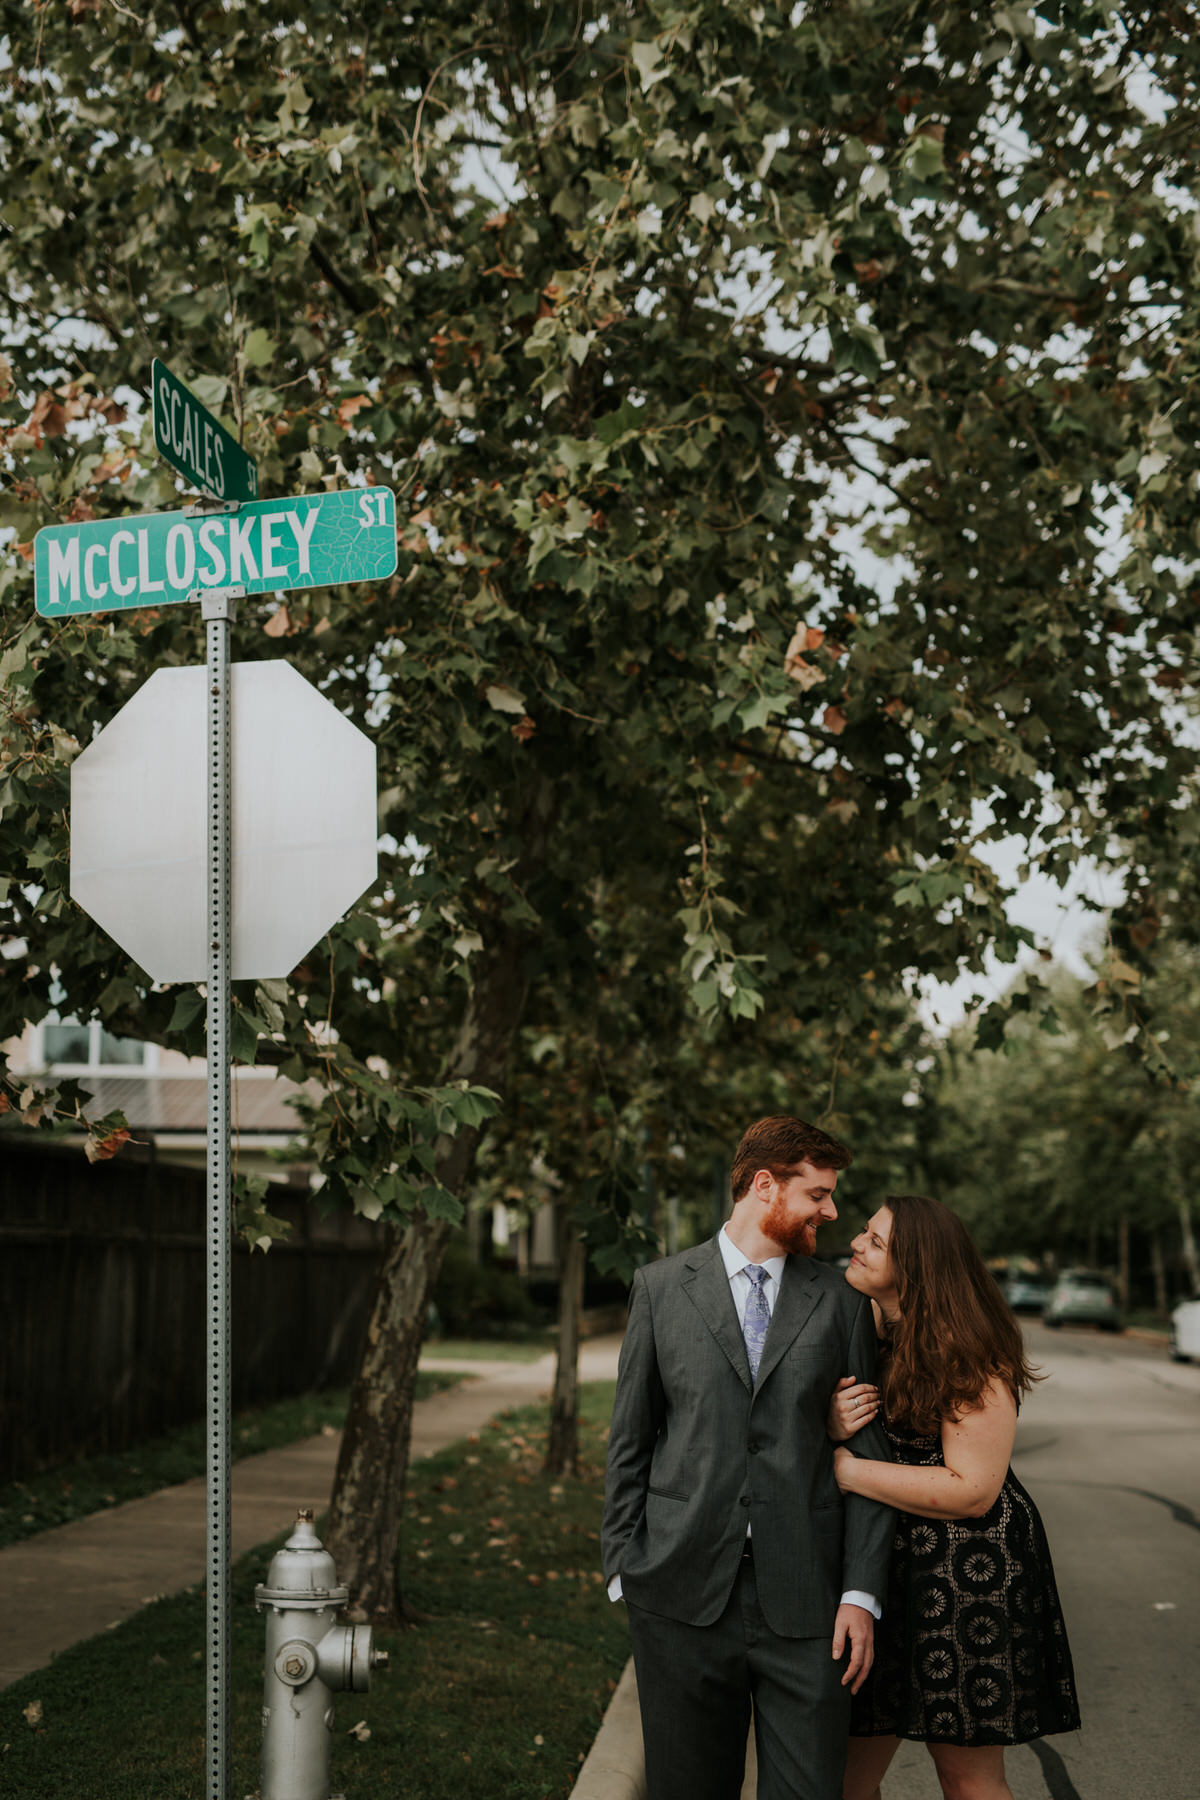 Couple hugging in front of street sign